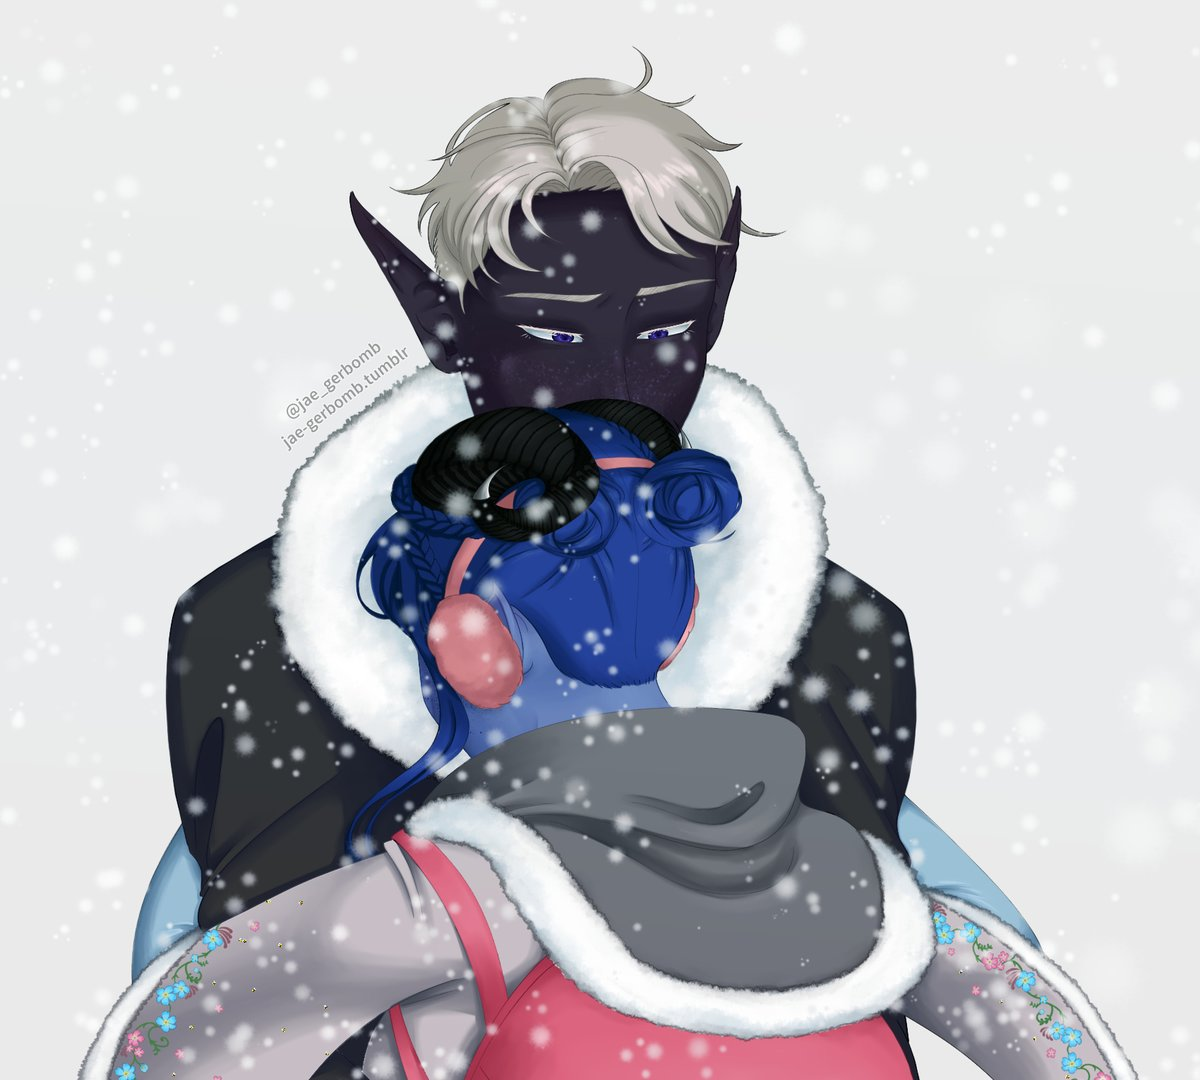 oh to be hugged by your friend Jester Lavorre 🥺💜💙 #CriticalRole #CriticalRoleFanart